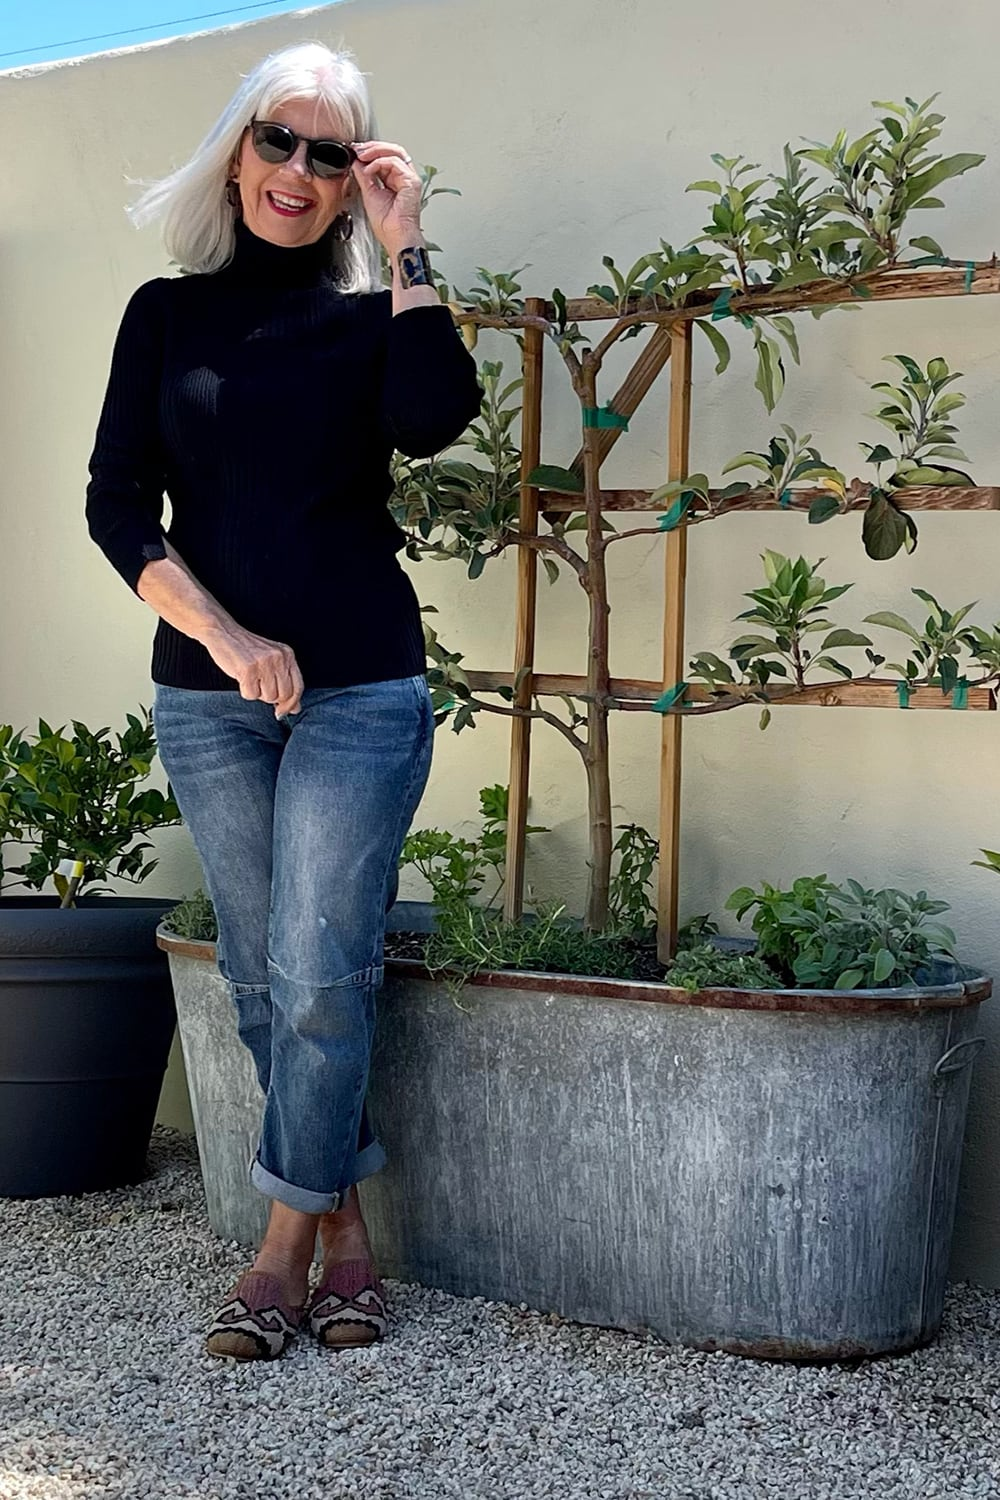 cindy hattersley in pilcro jeans and black turtleneck